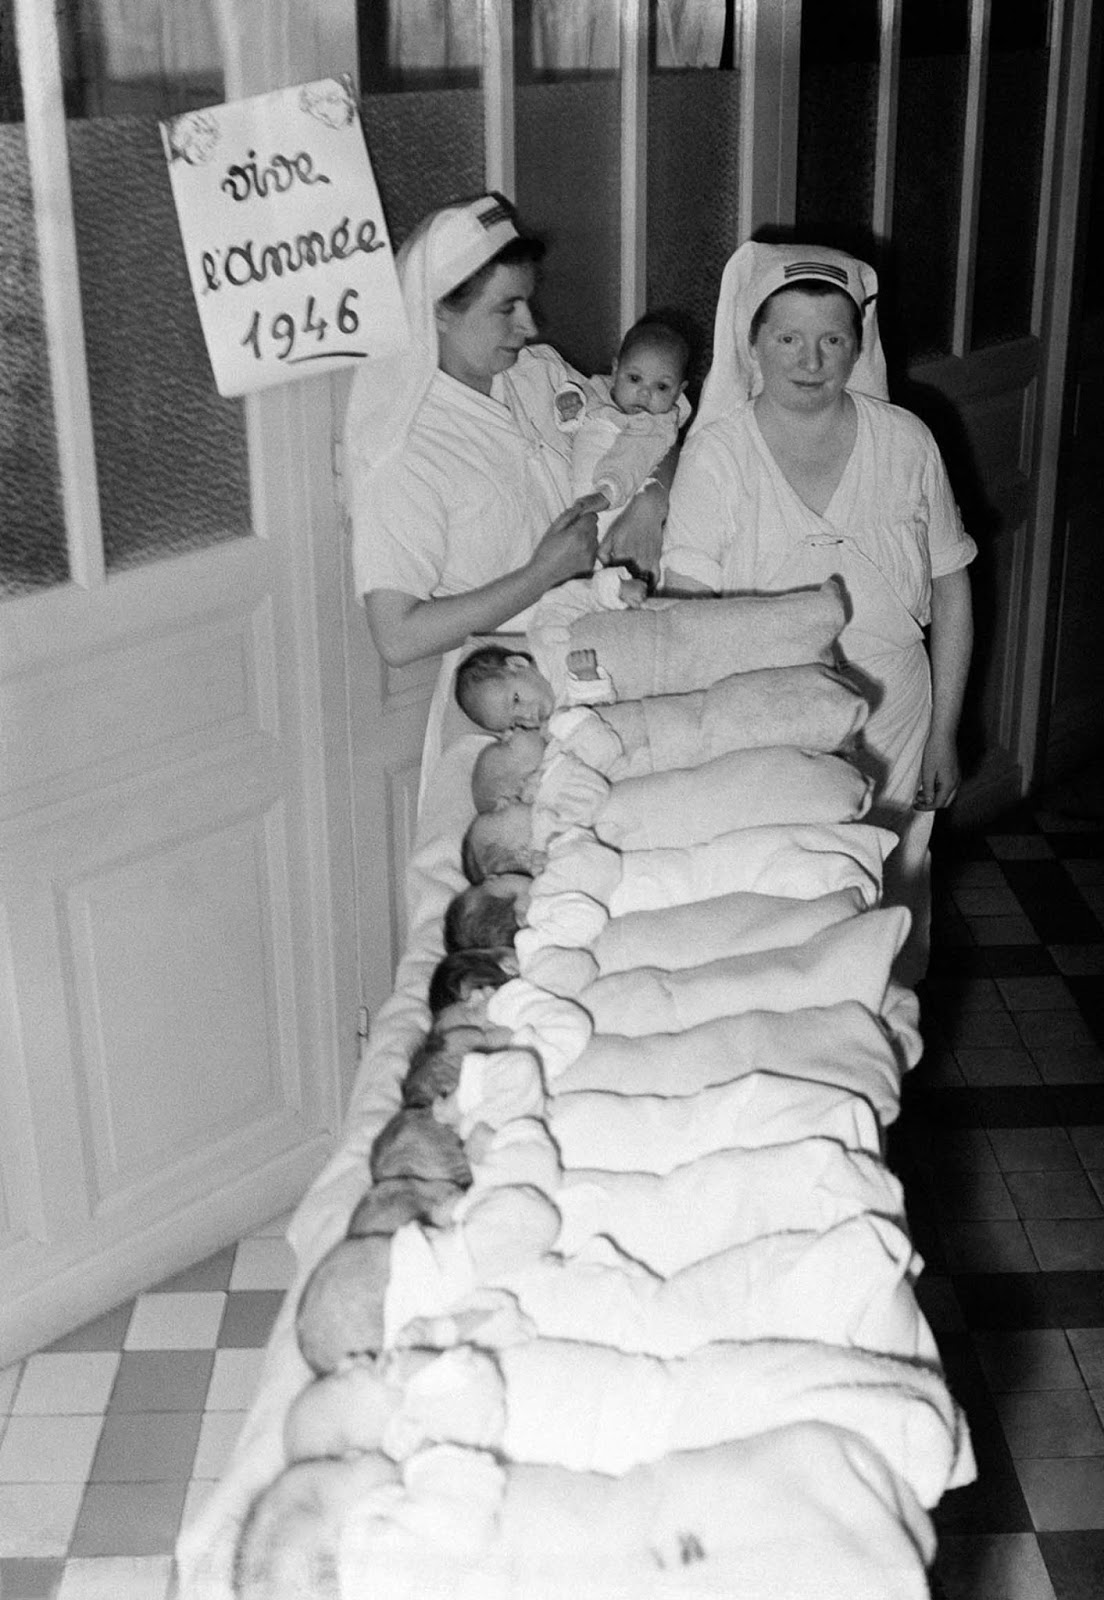 The first babies of the new year in a maternity ward in Paris, 1946.